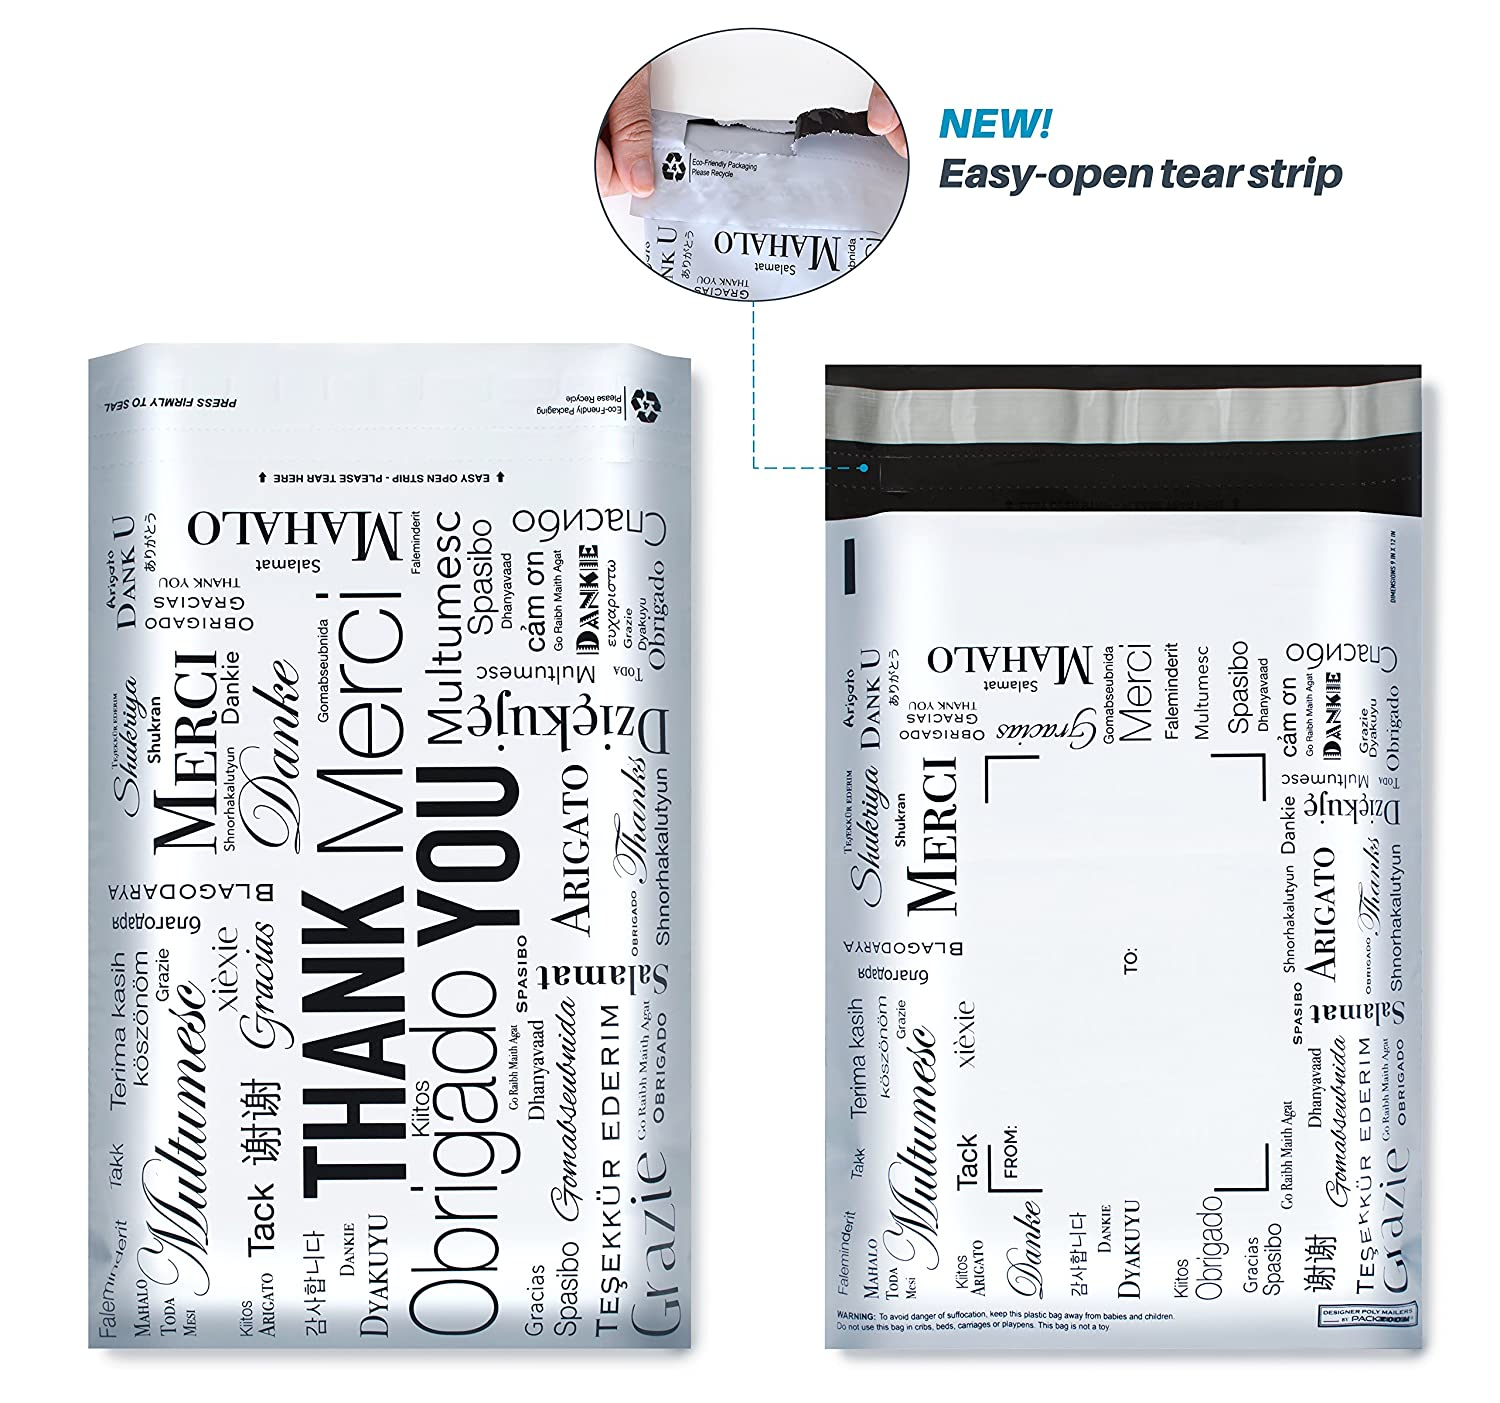 9x12 Designer Poly Mailers with Global THANK YOU Design, Easy Tear Strip, Self Adhesive, Strong Glue, Anti-static Release Liner - 2.4 Mil, 100 Bags